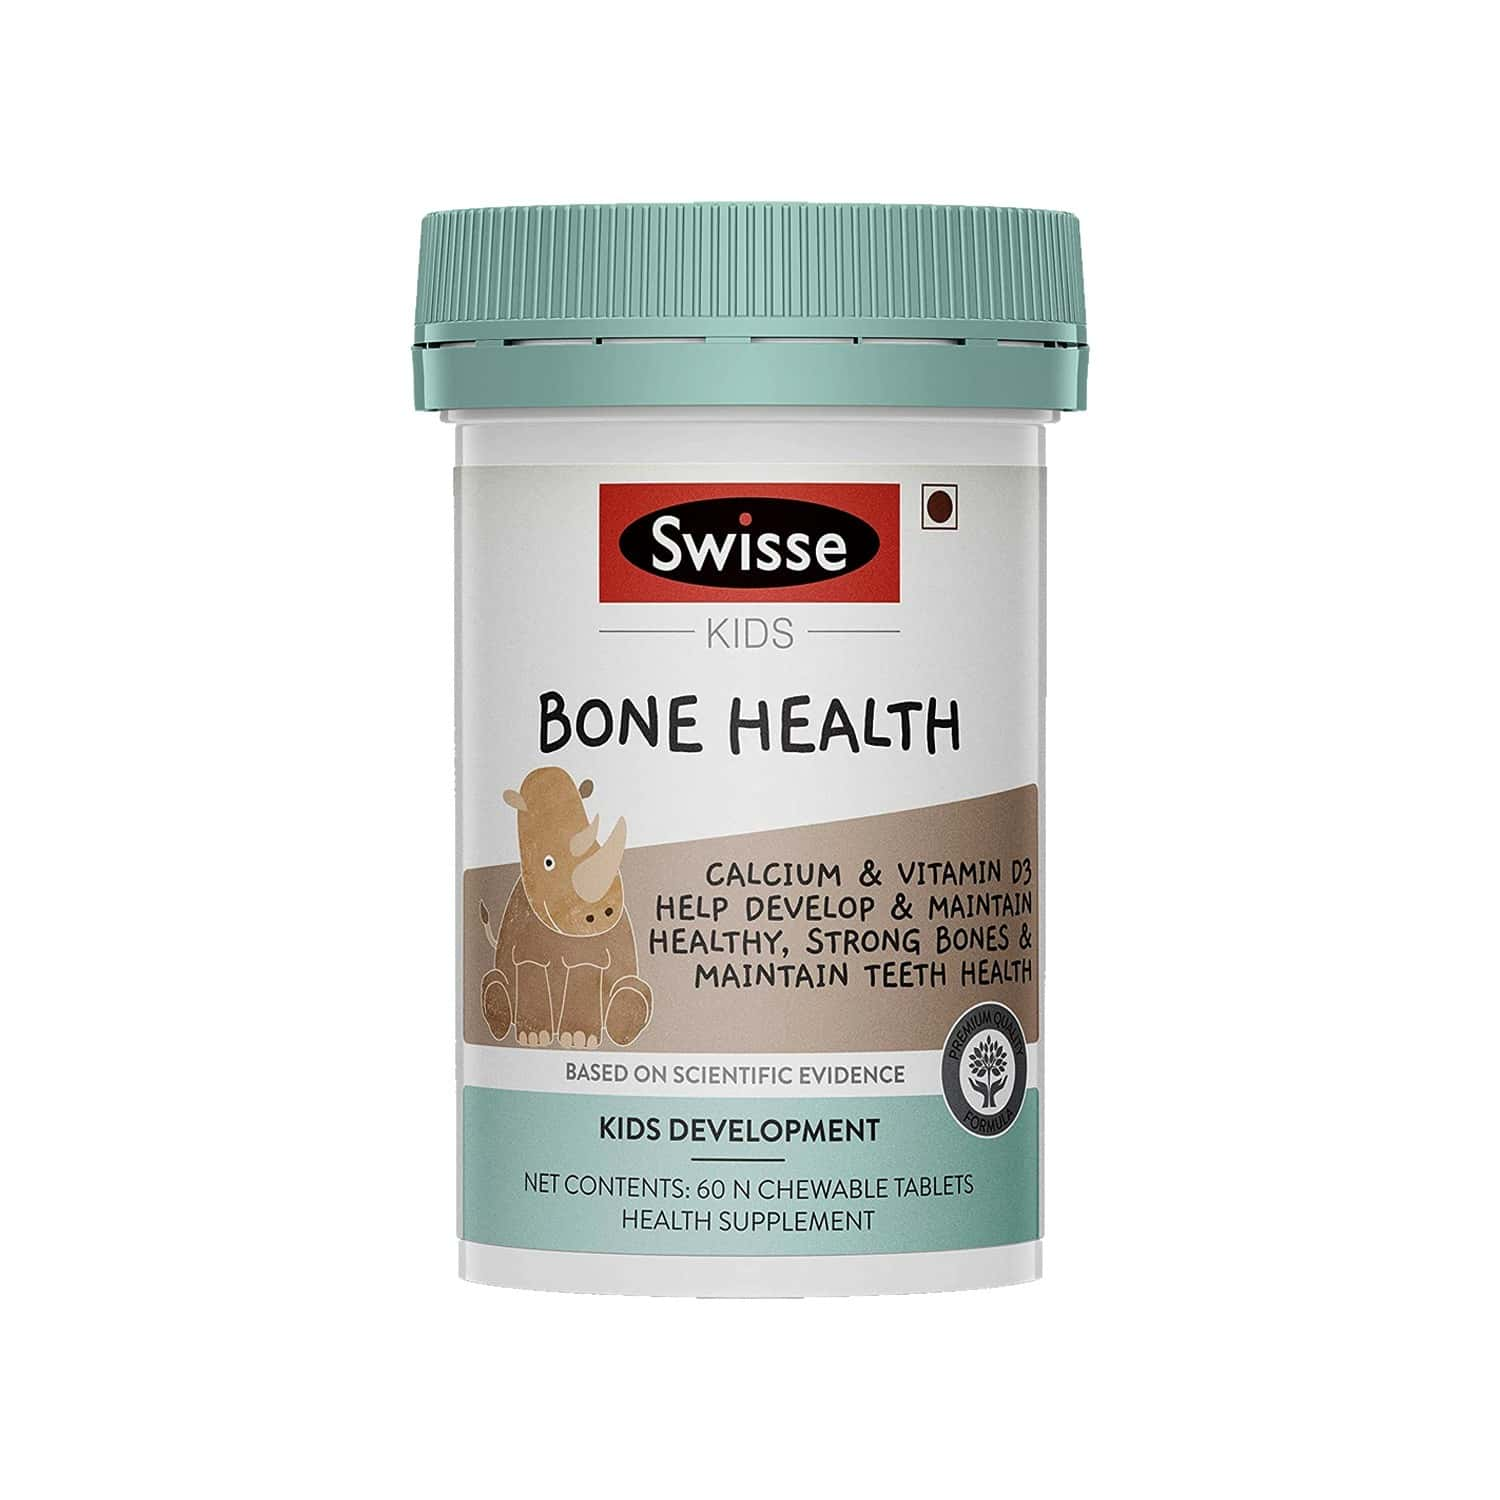 Swisse Kids Bone Health Supplements (calcium And Vitamin D3) For Healthy Strong Bones And Maintenance Of Teeth Health (5-12 Years) - 60 Chewable Tablets